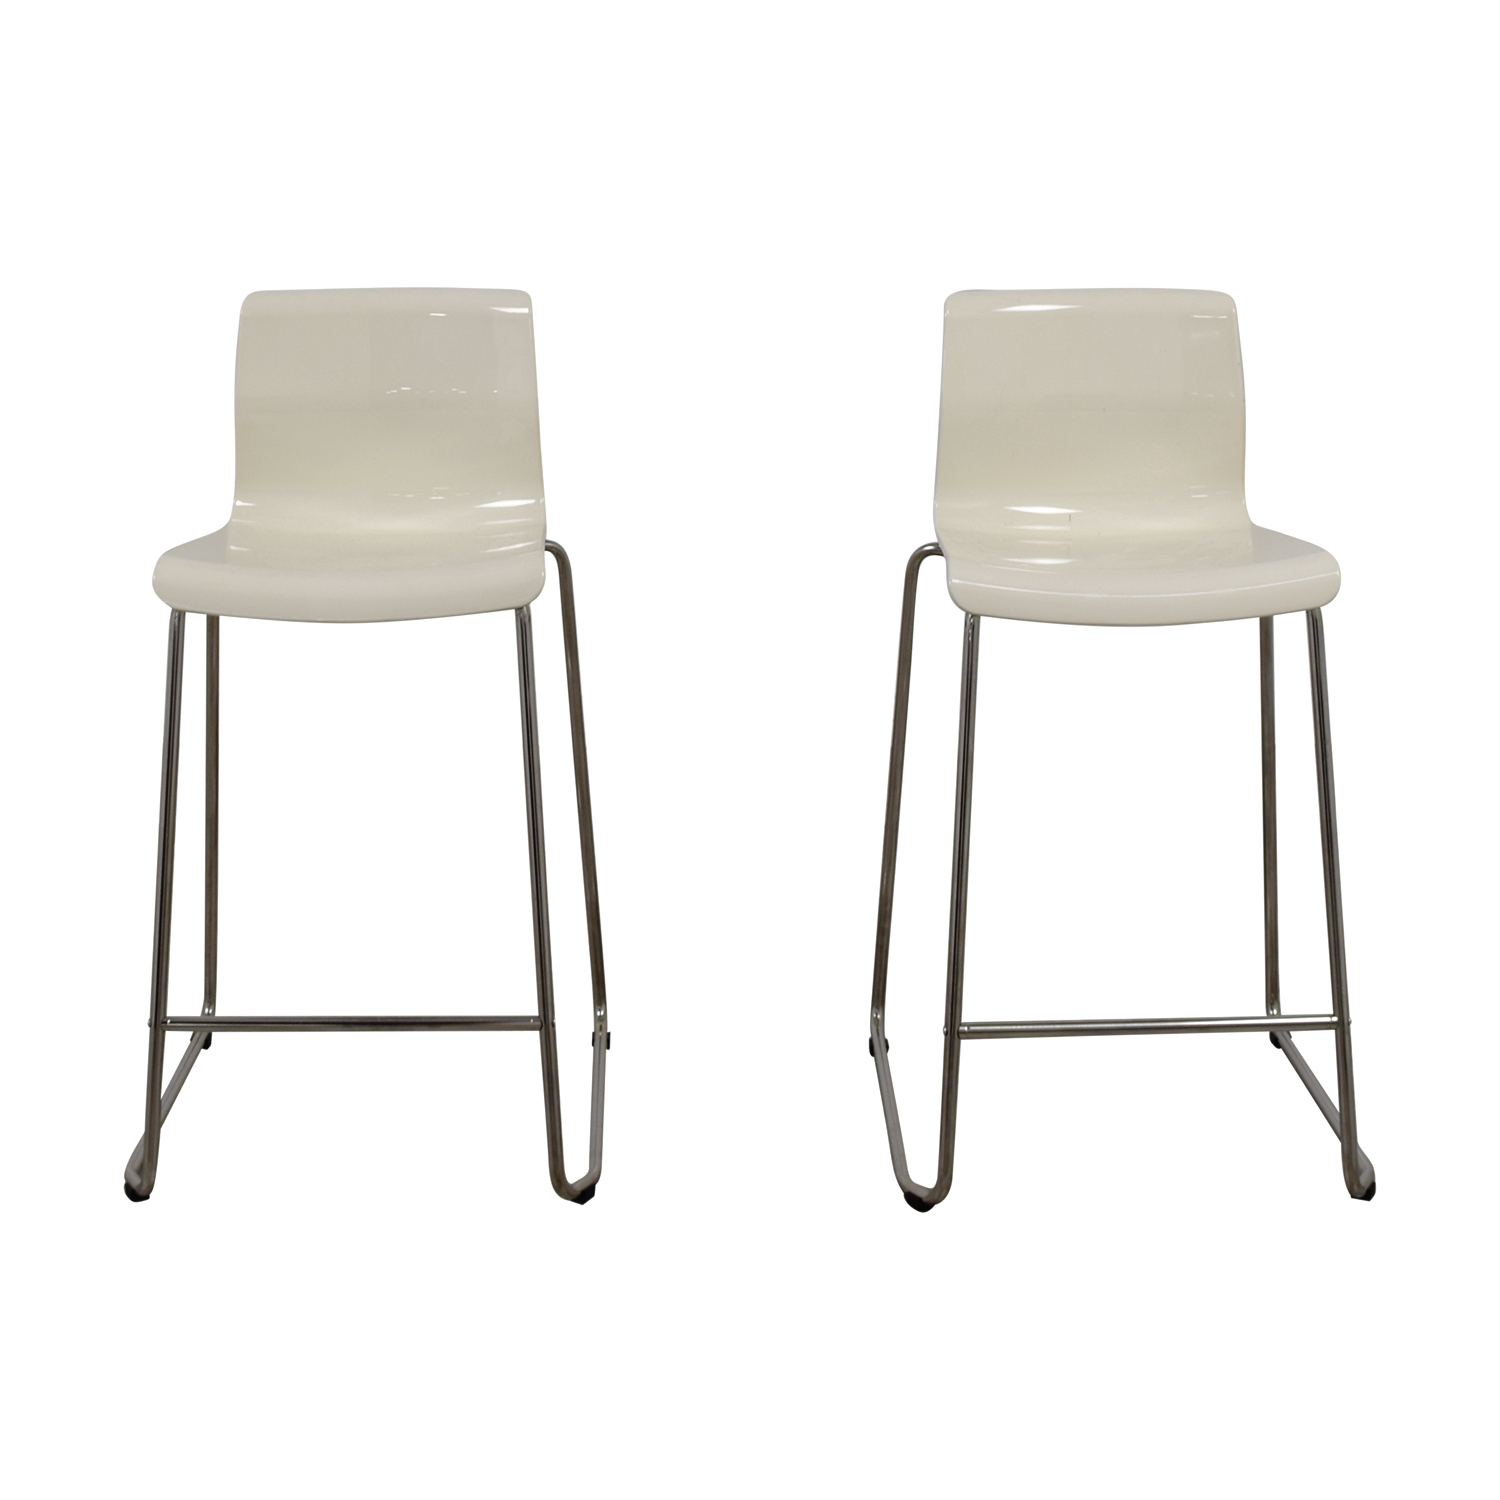 36 Inch Bar Stools Ikea 71 Off Ikea Ikea White Bar Stools Chairs